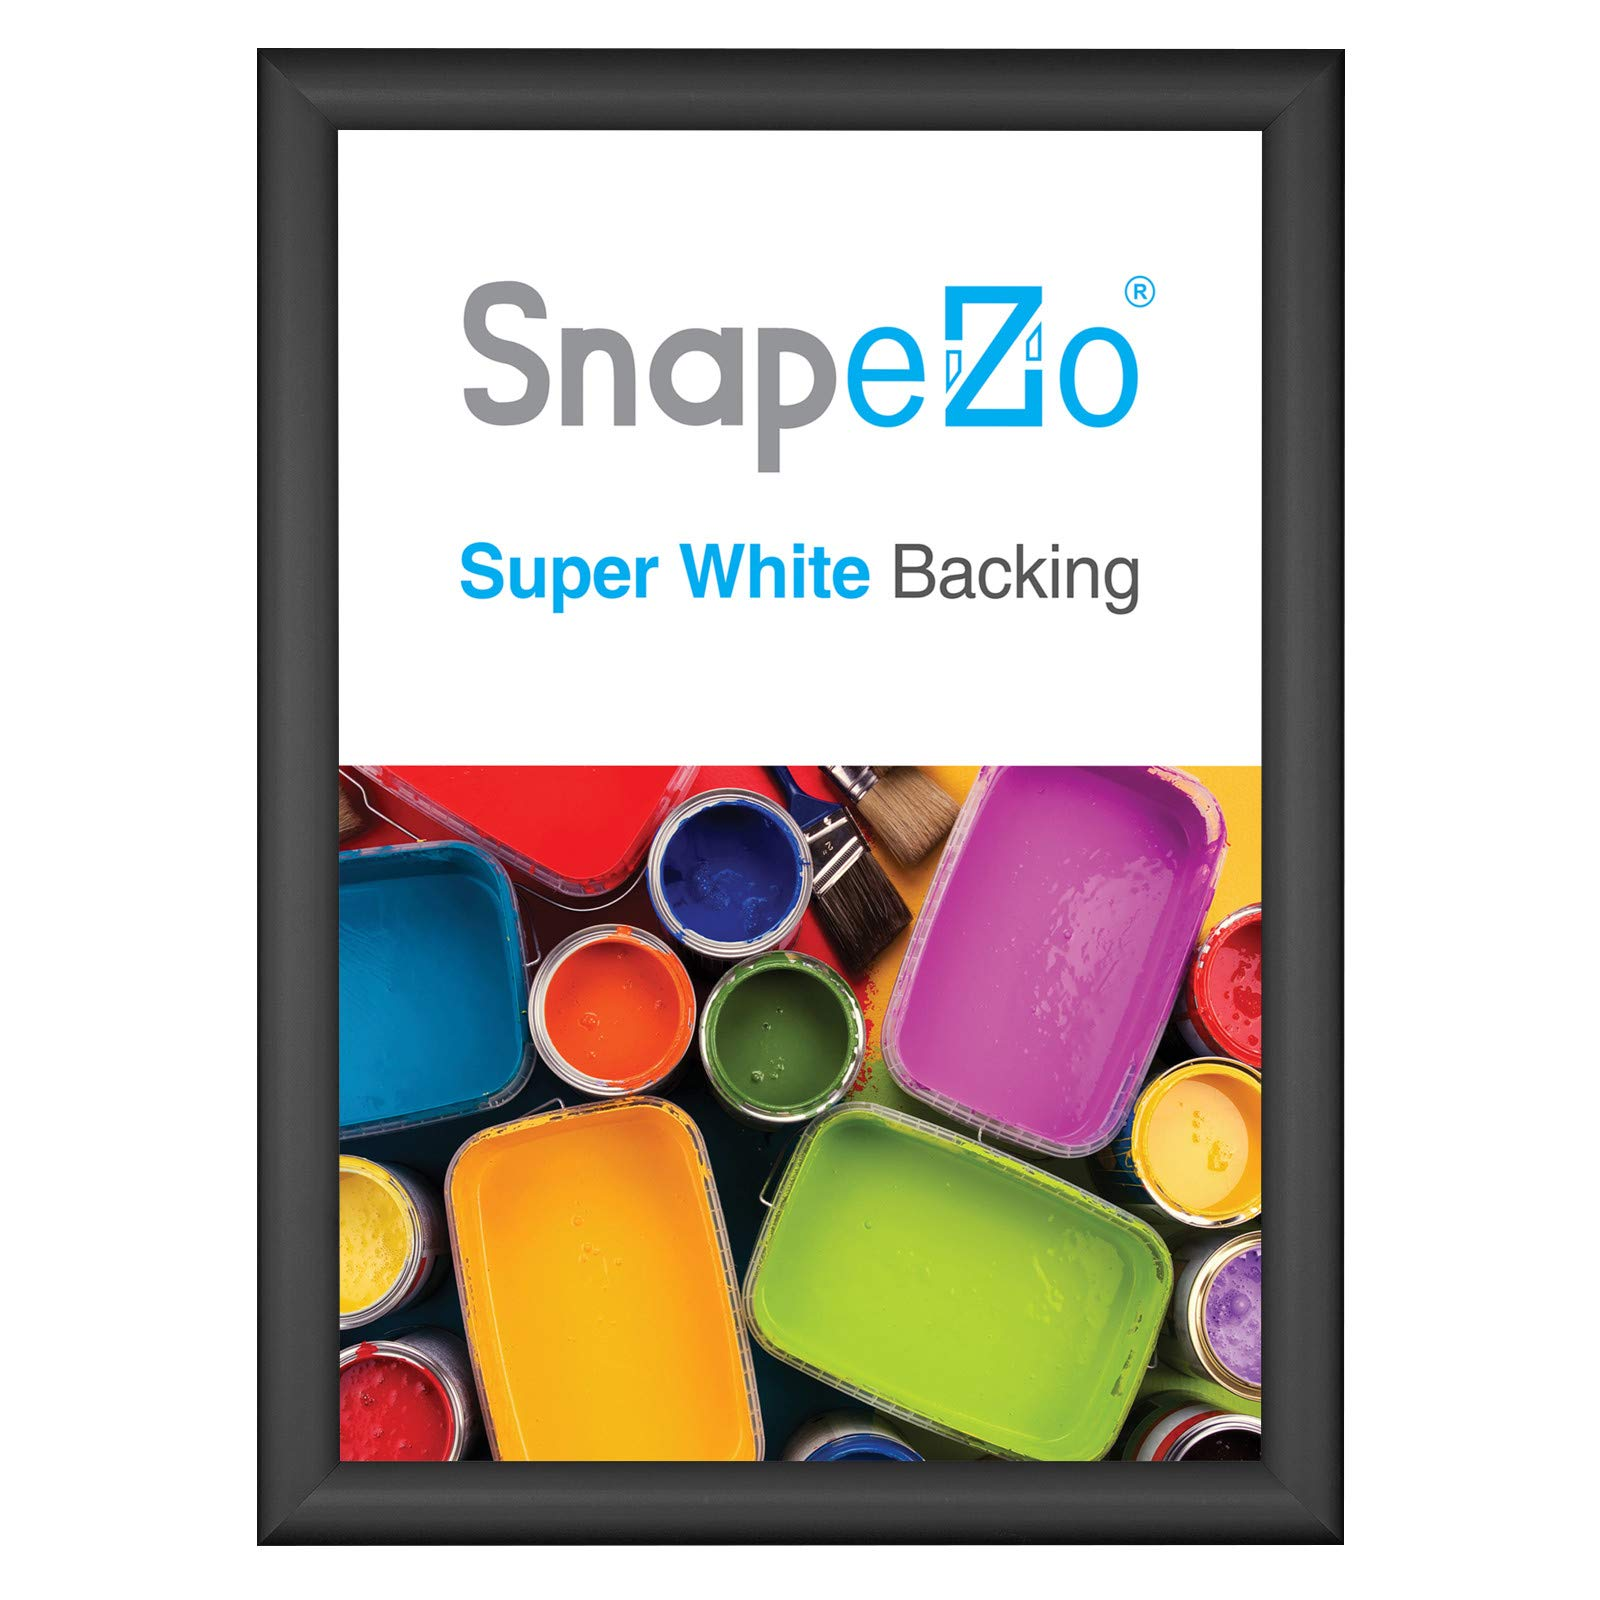 SnapeZo Poster Frame A2 Size (16.5 x 23.4 inches), Black 1 Inch Aluminum Profile, Front-Loading Snap Frame, Wall Mounting, Sleek Series